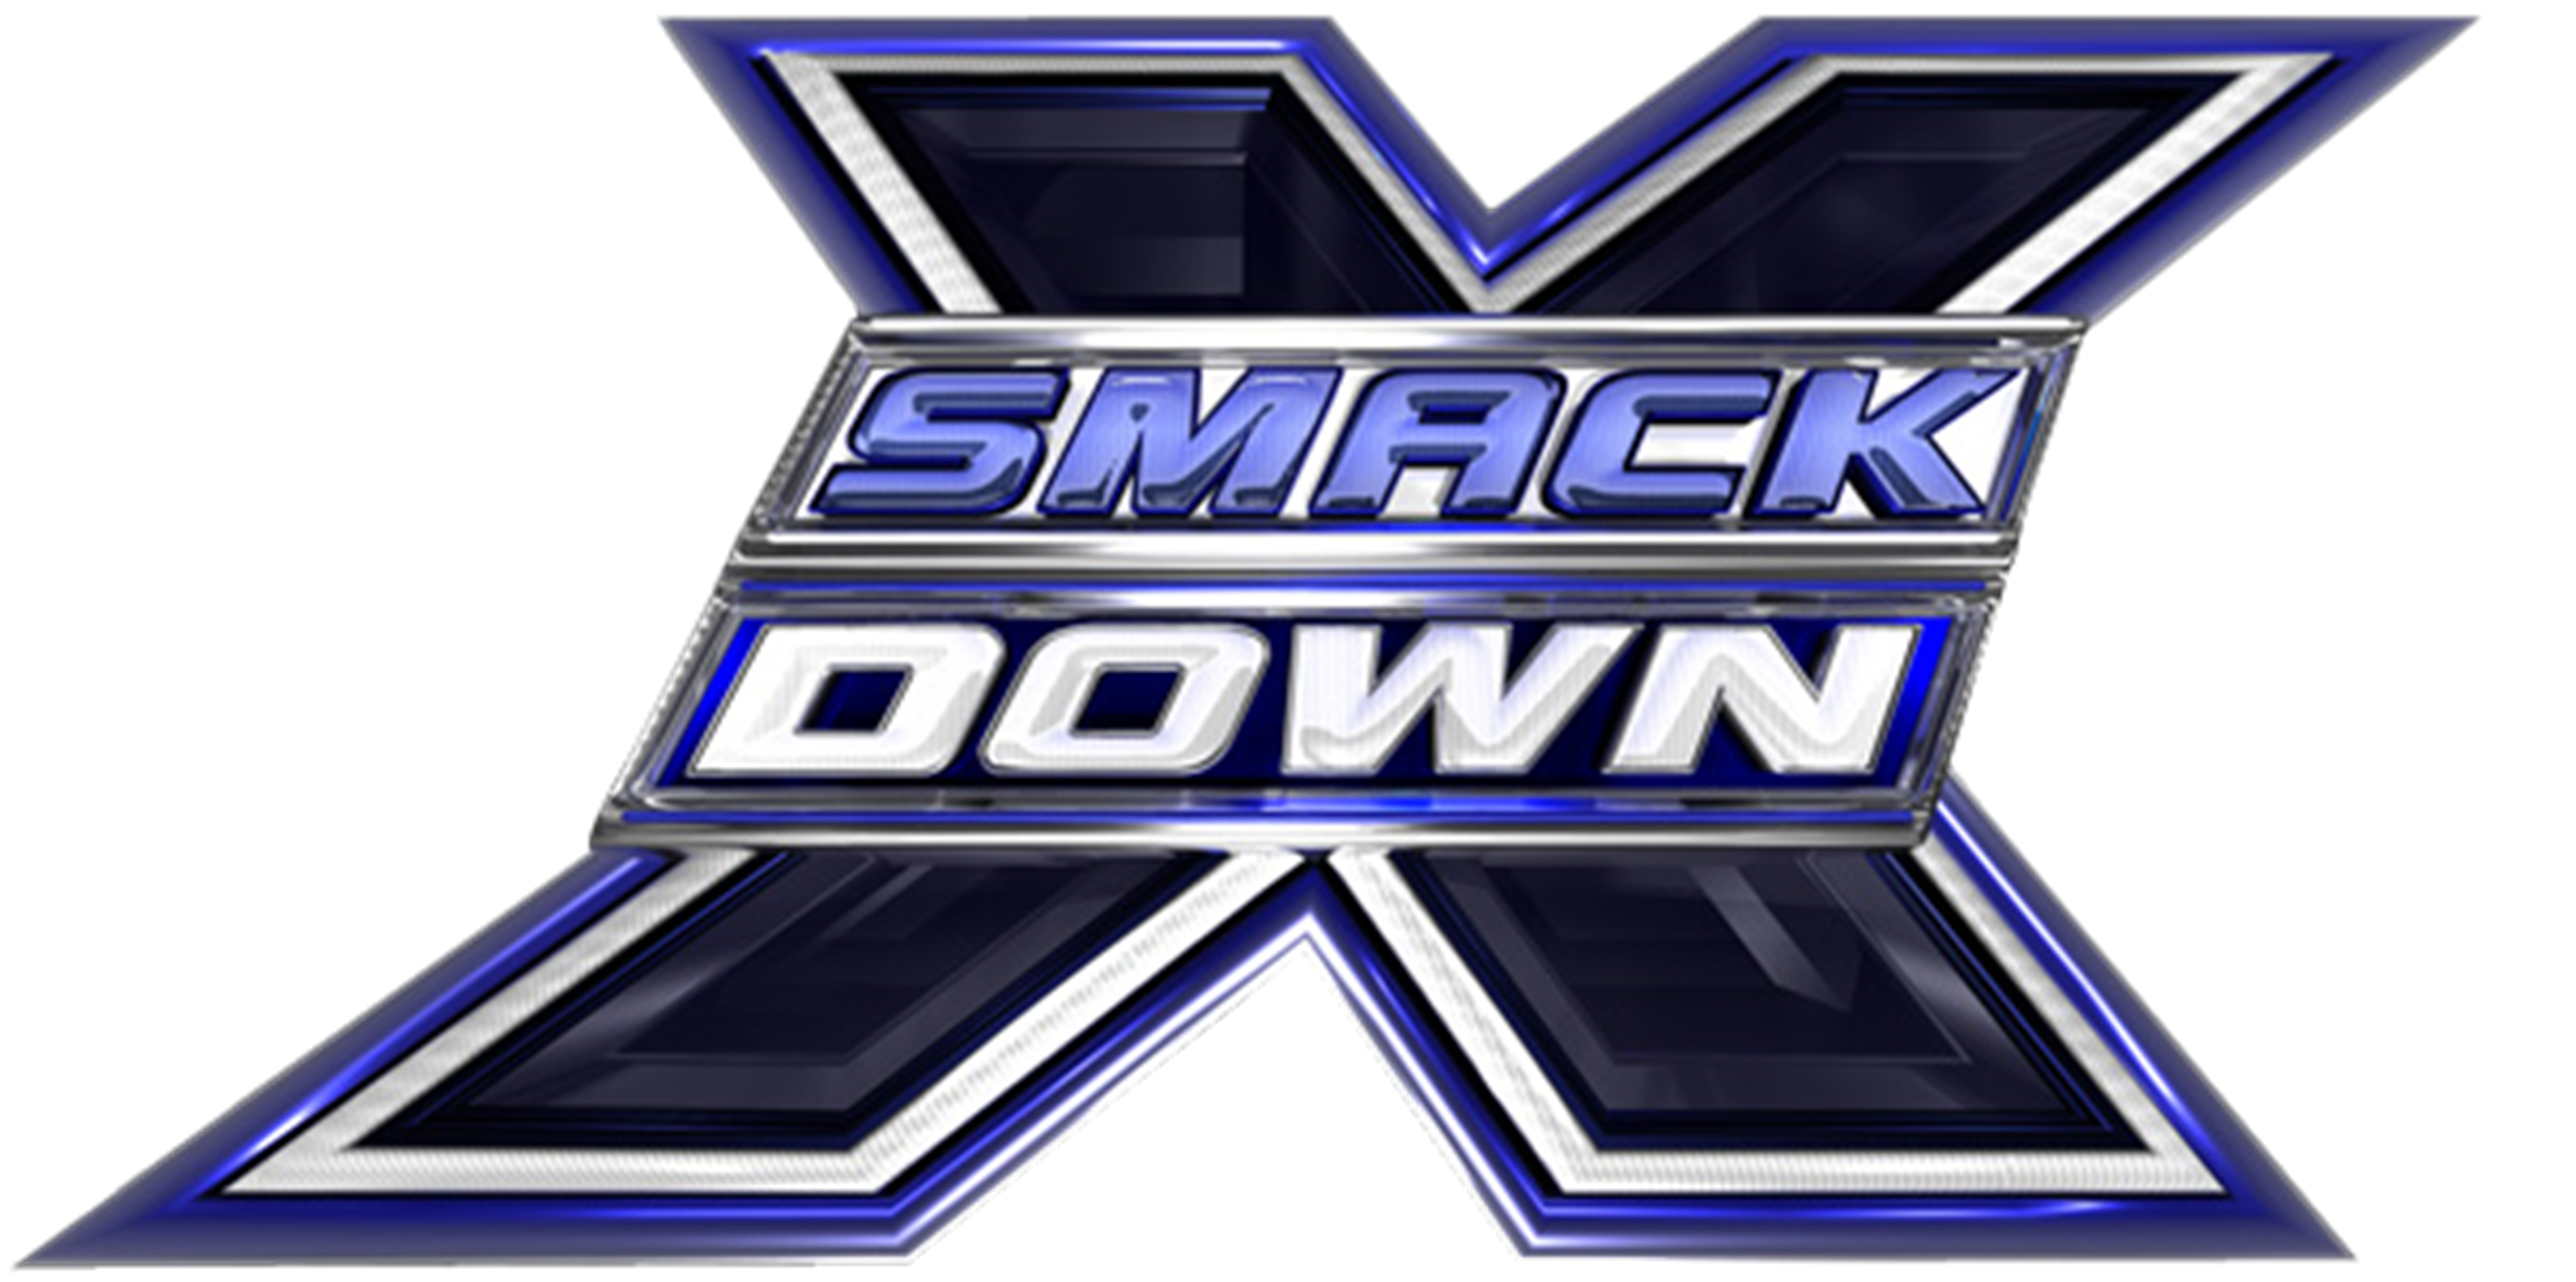 Wwe Smackdown Logo - Download 112 Logos (Page 1)